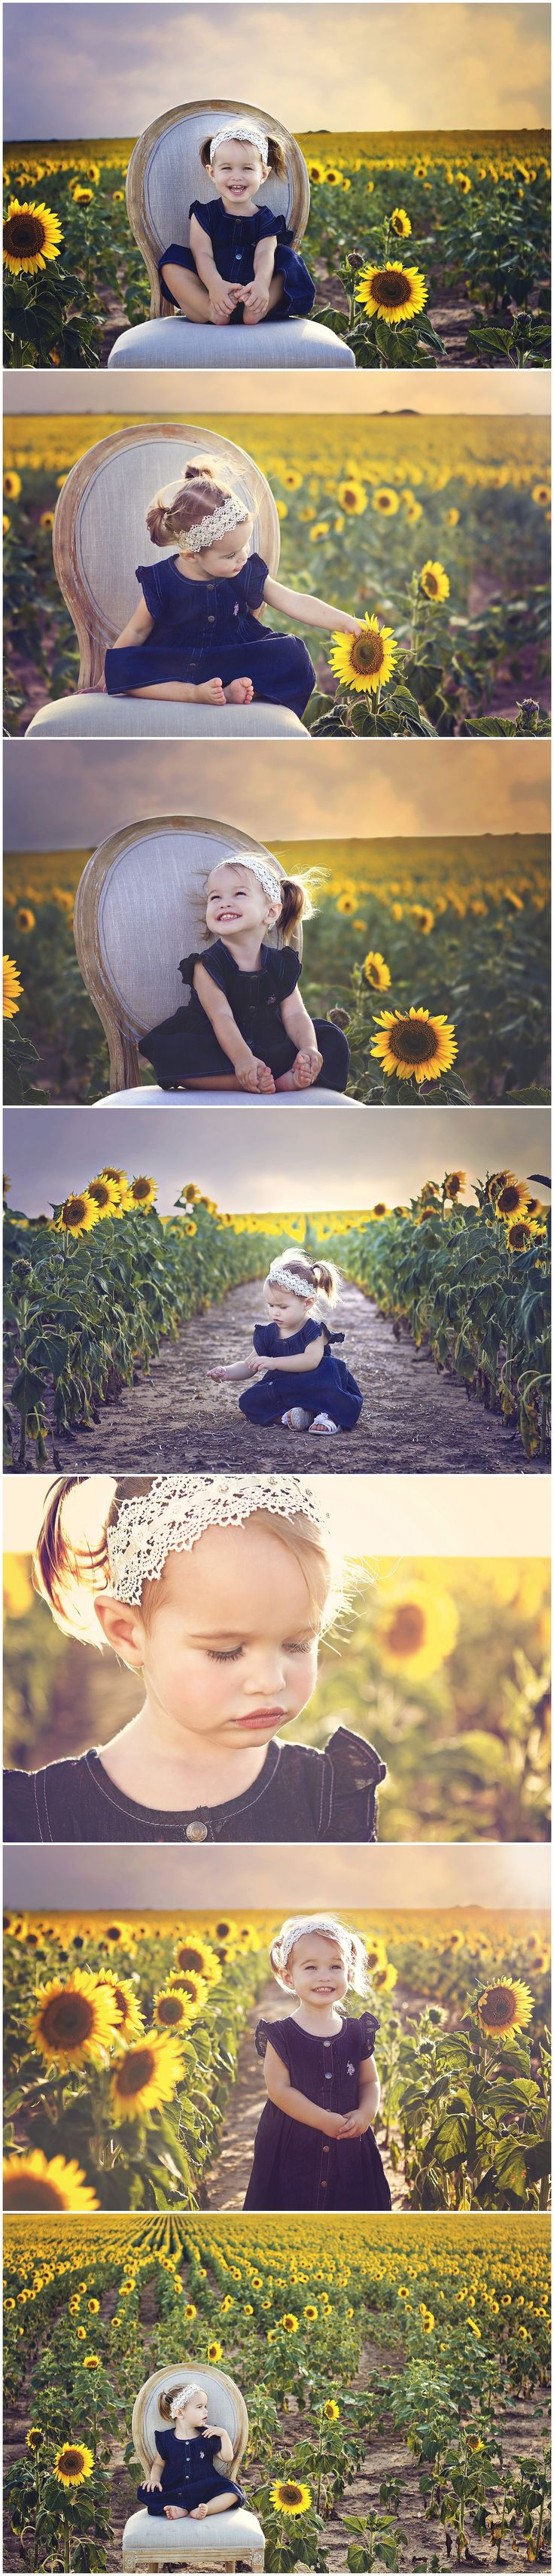 Sunflower fields & photography; red wagon instead of chair